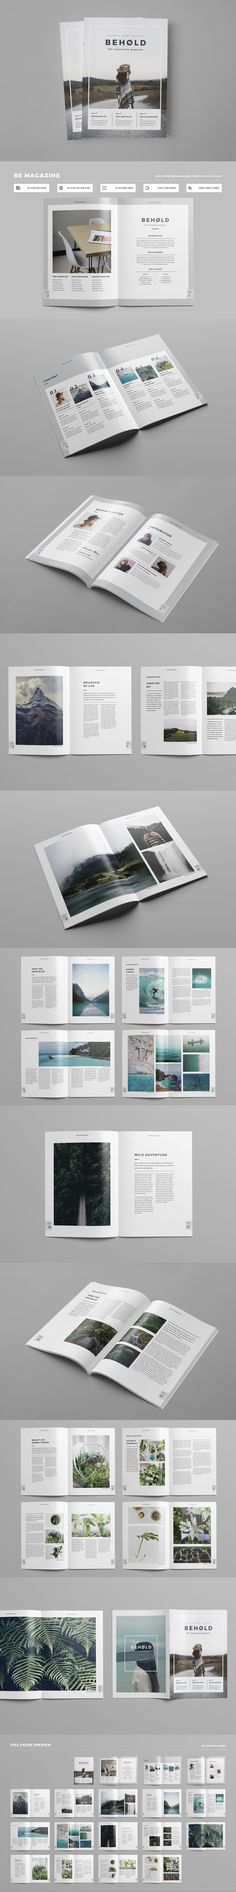 Clean & Professional Magazine Template INDD With Include A4 & US Letter Size. 36 Pages